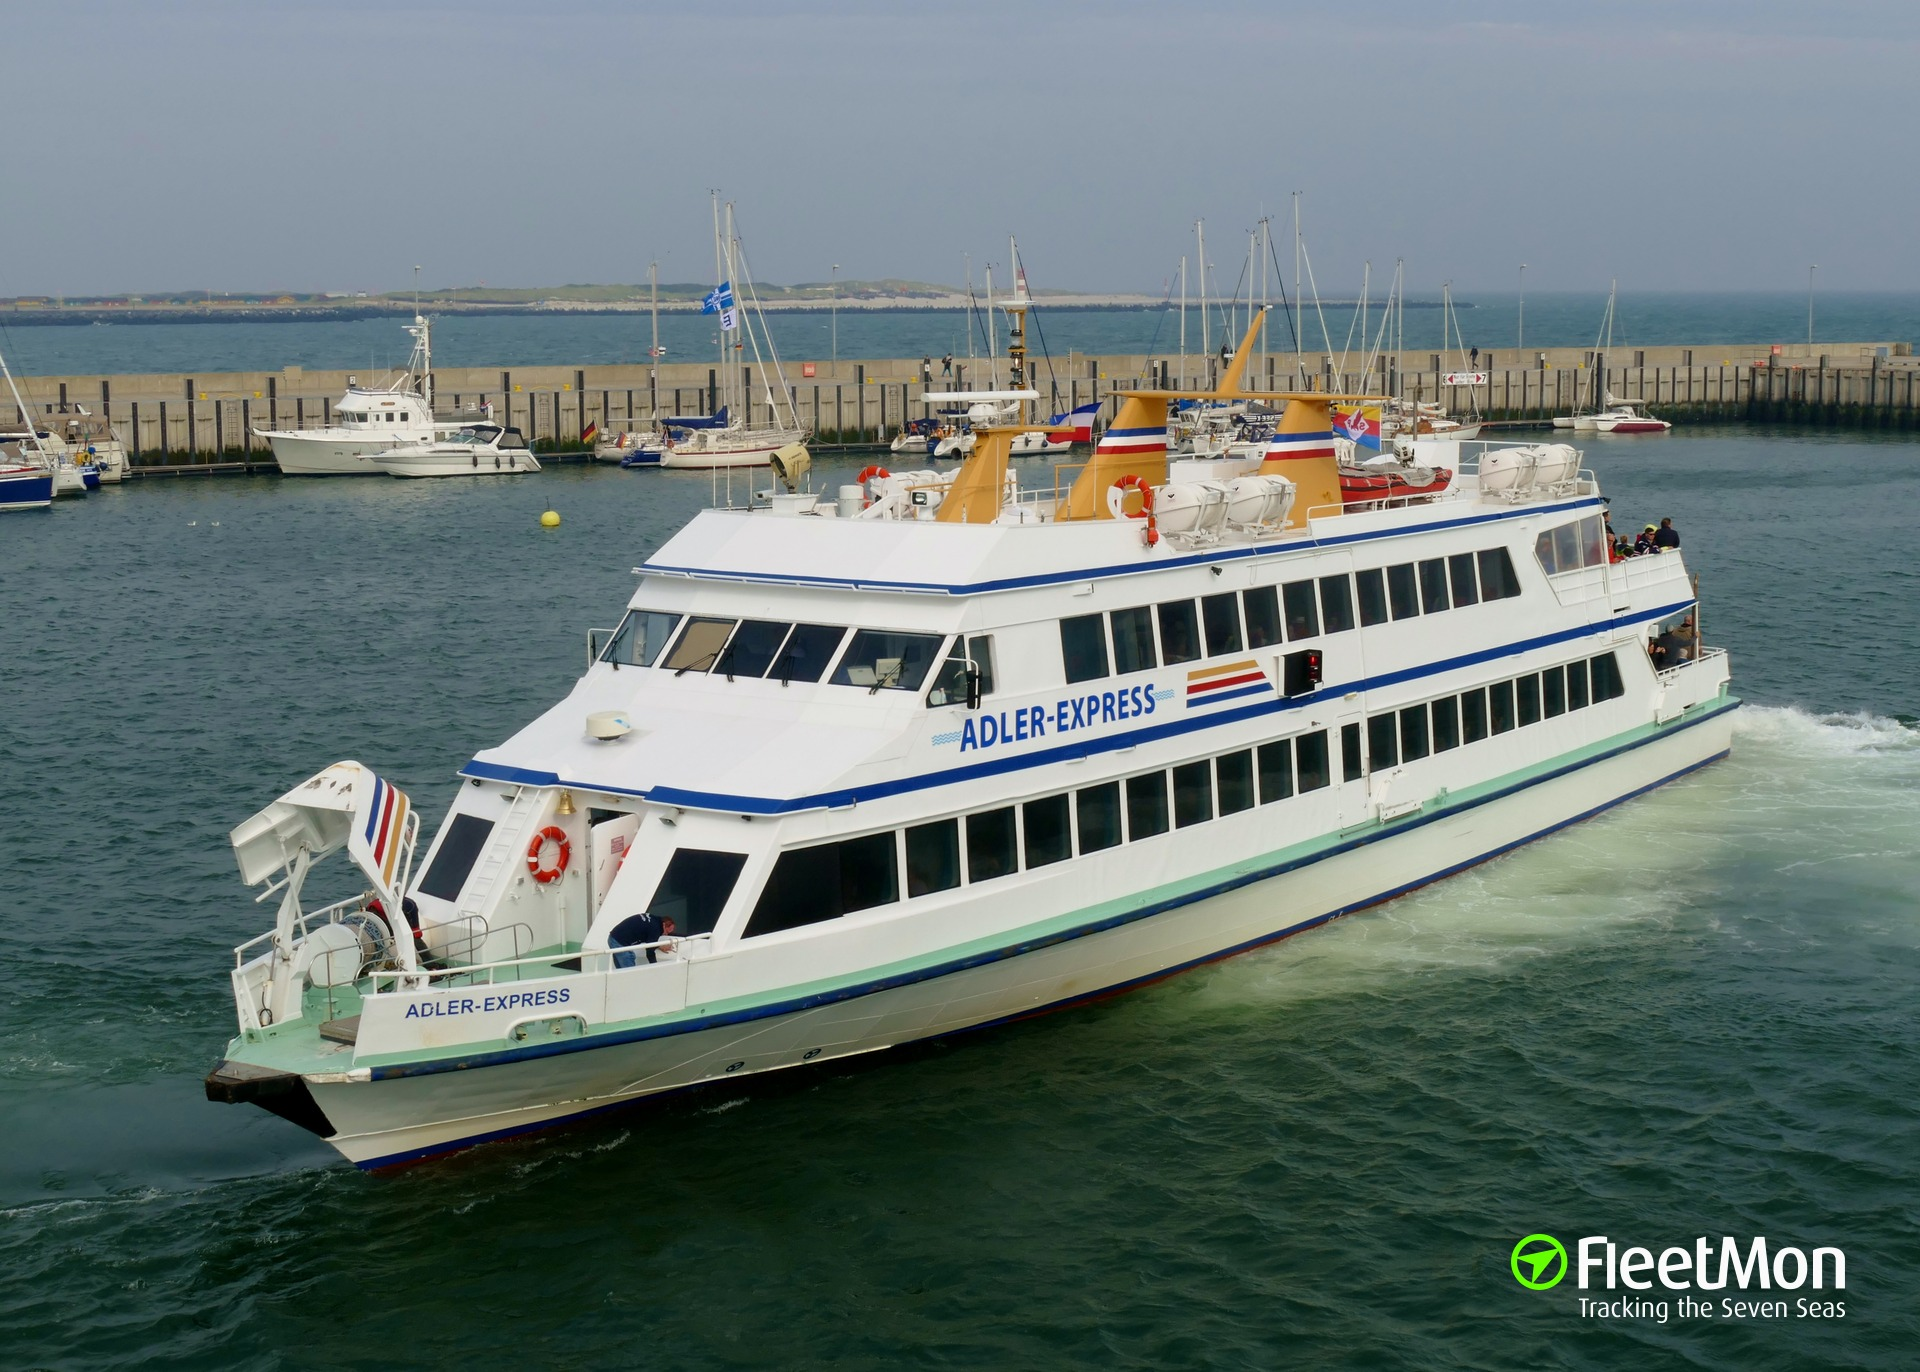 Ferry ADLER EXPRESS hits quay in Germany, 27 people injured